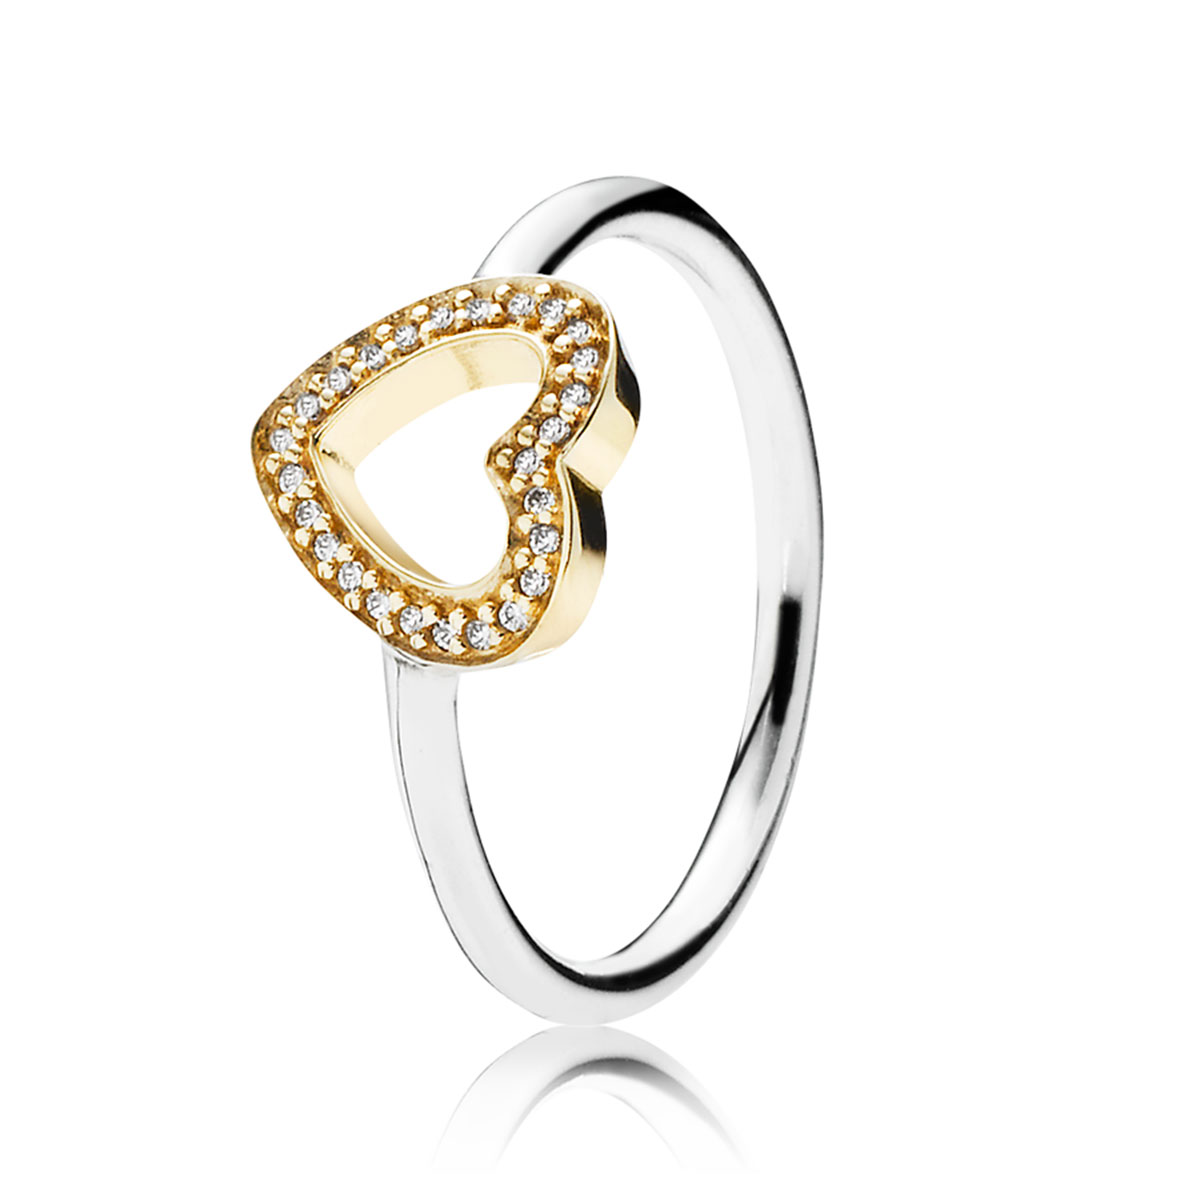 PANDORA Symbol of Love with Clear CZ and 14K Ring